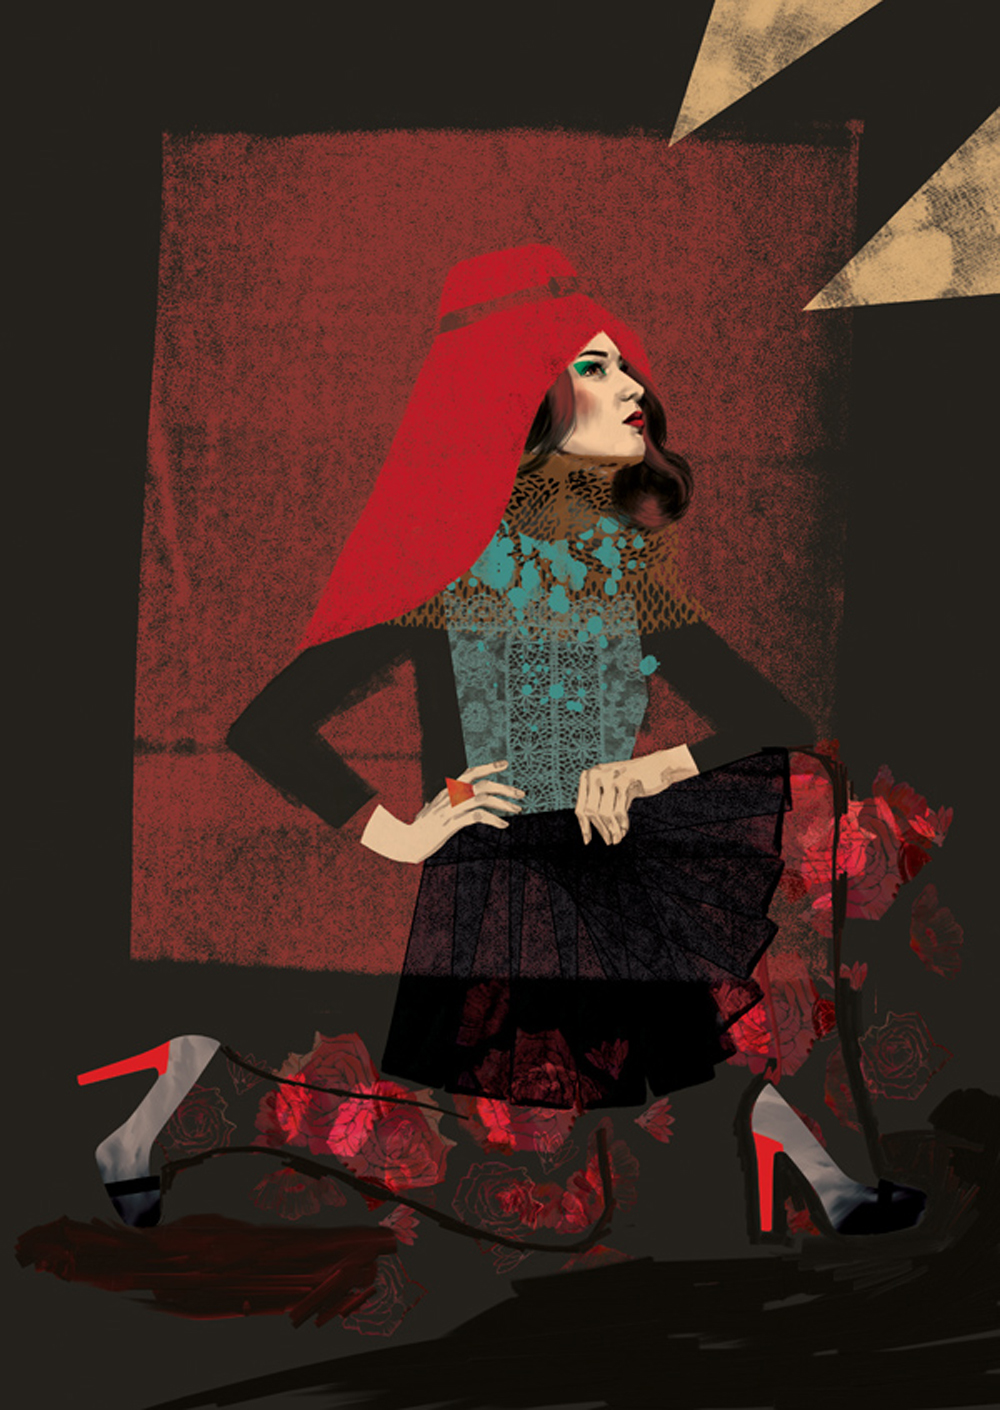 Little Red Cap, Karen Klassen